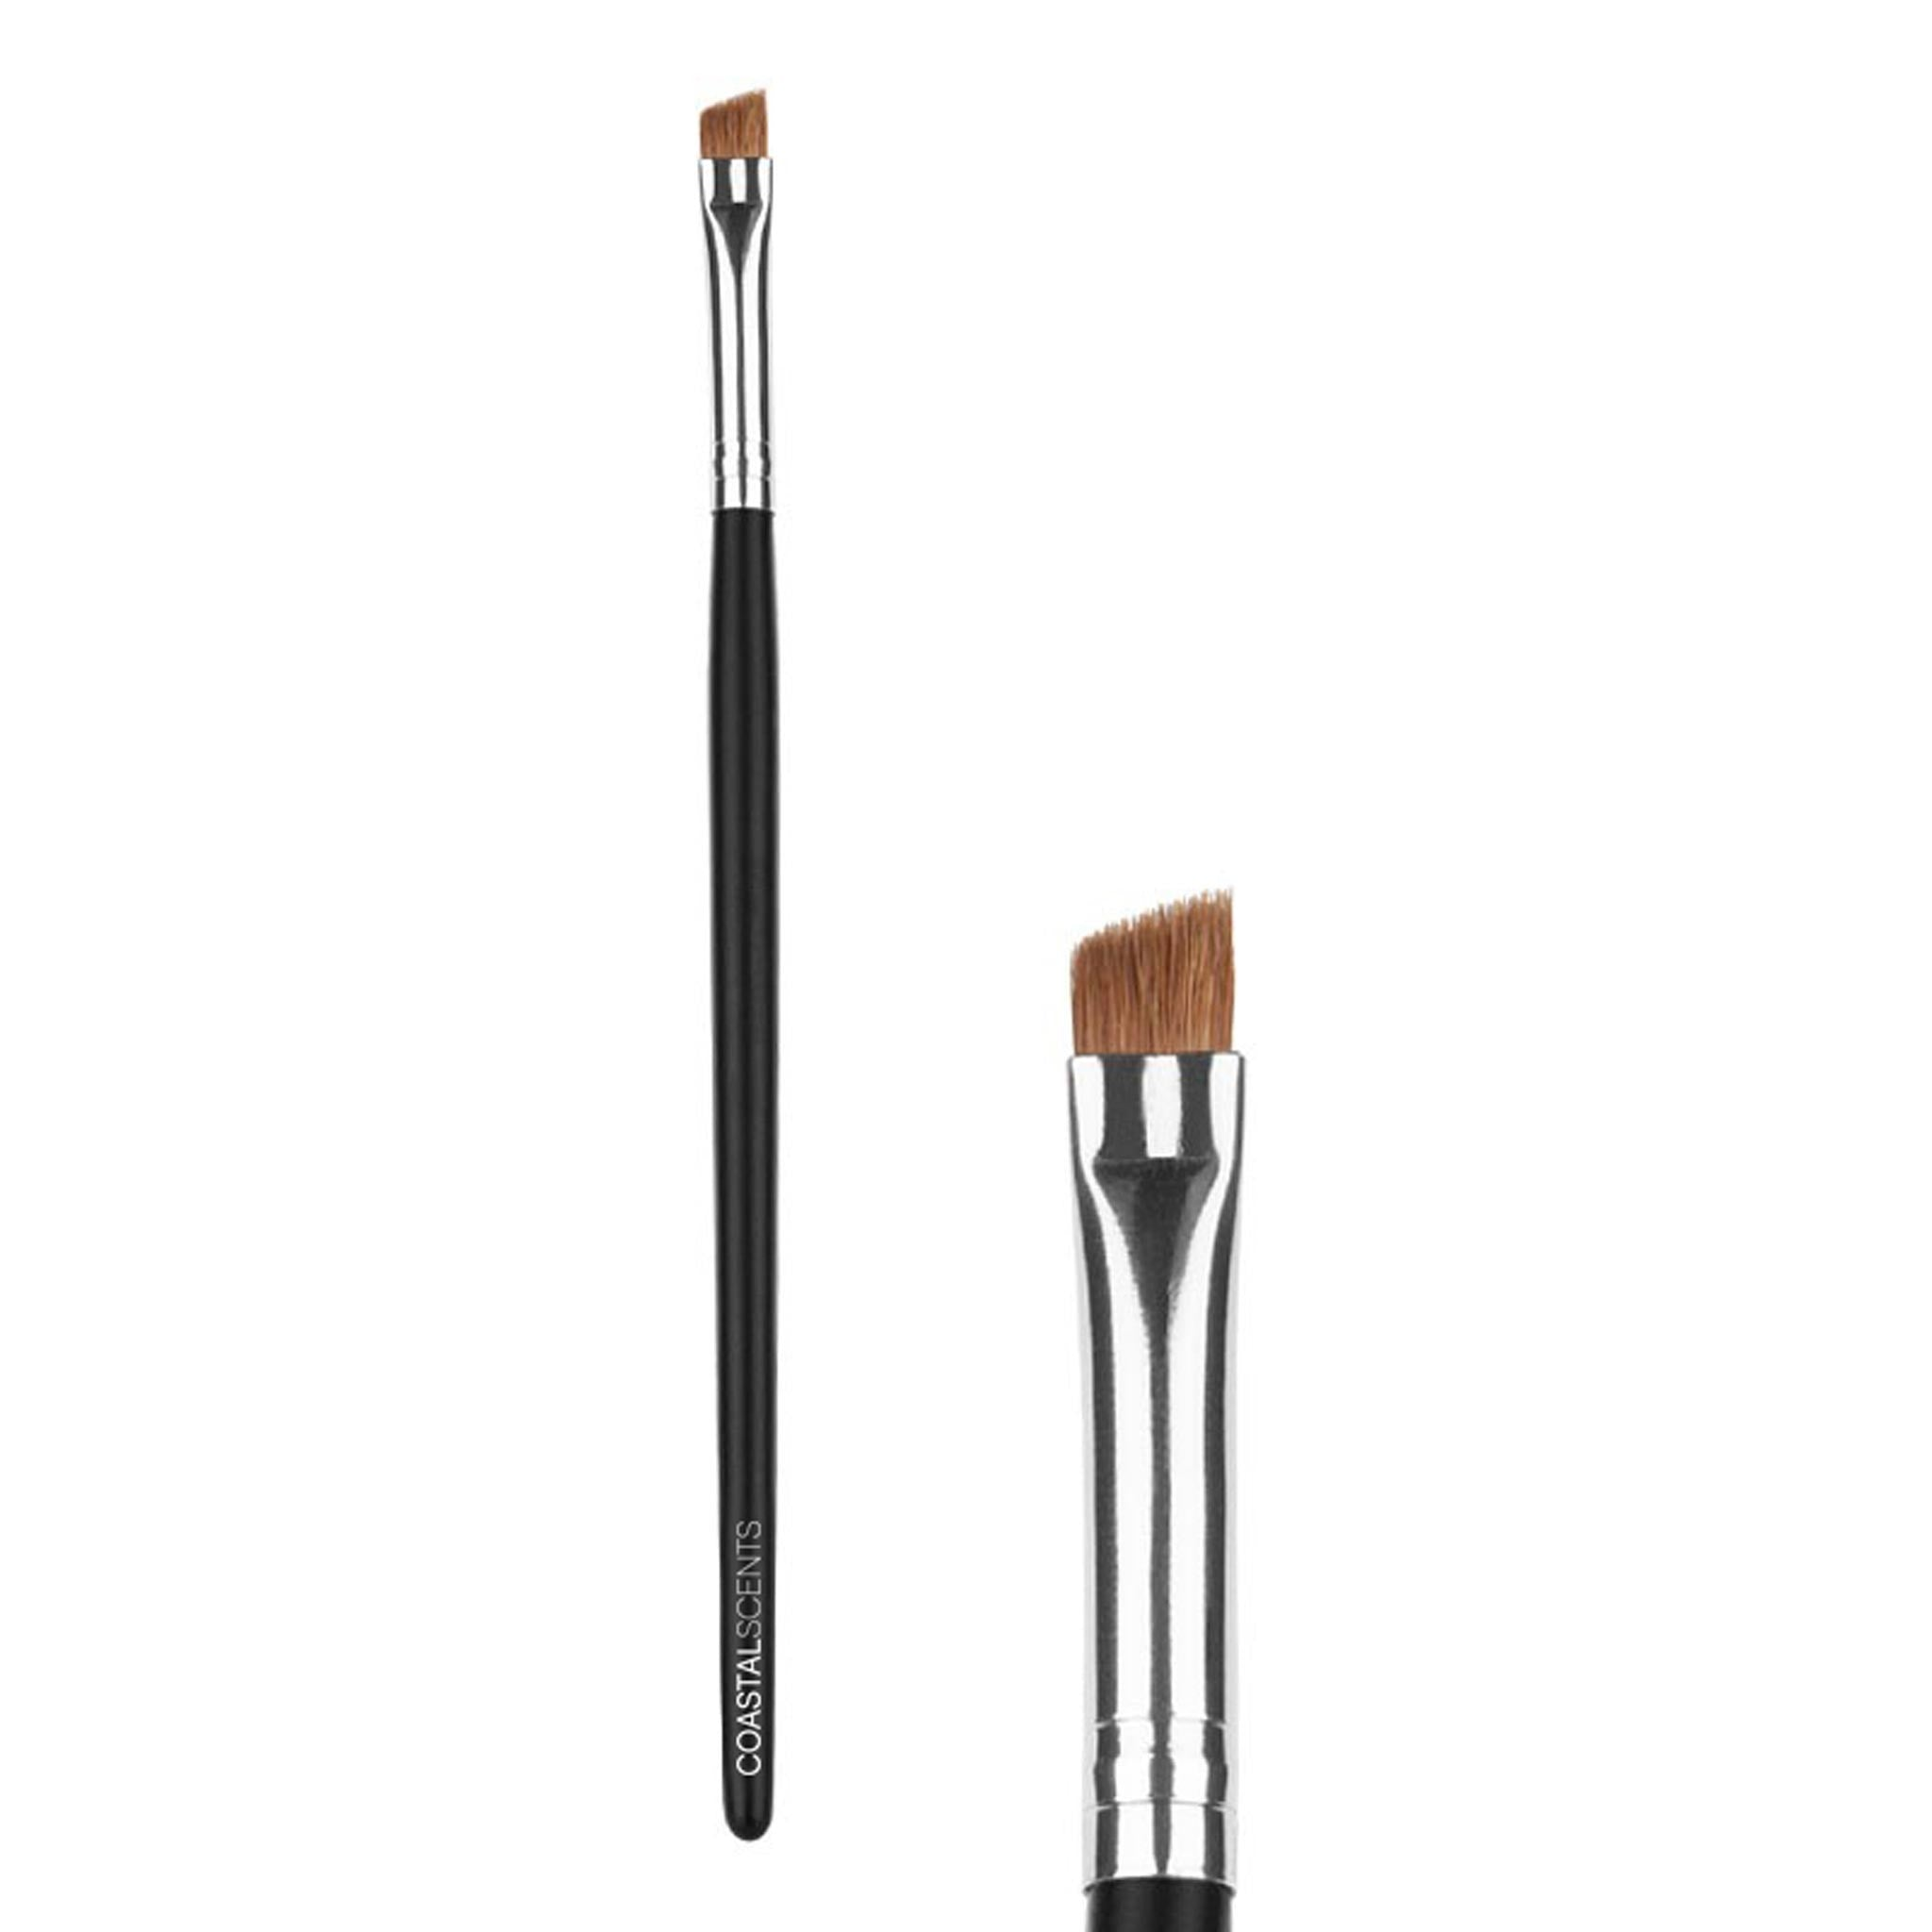 Coastal Scents coupon: Classic Angled Liner Brush Natural